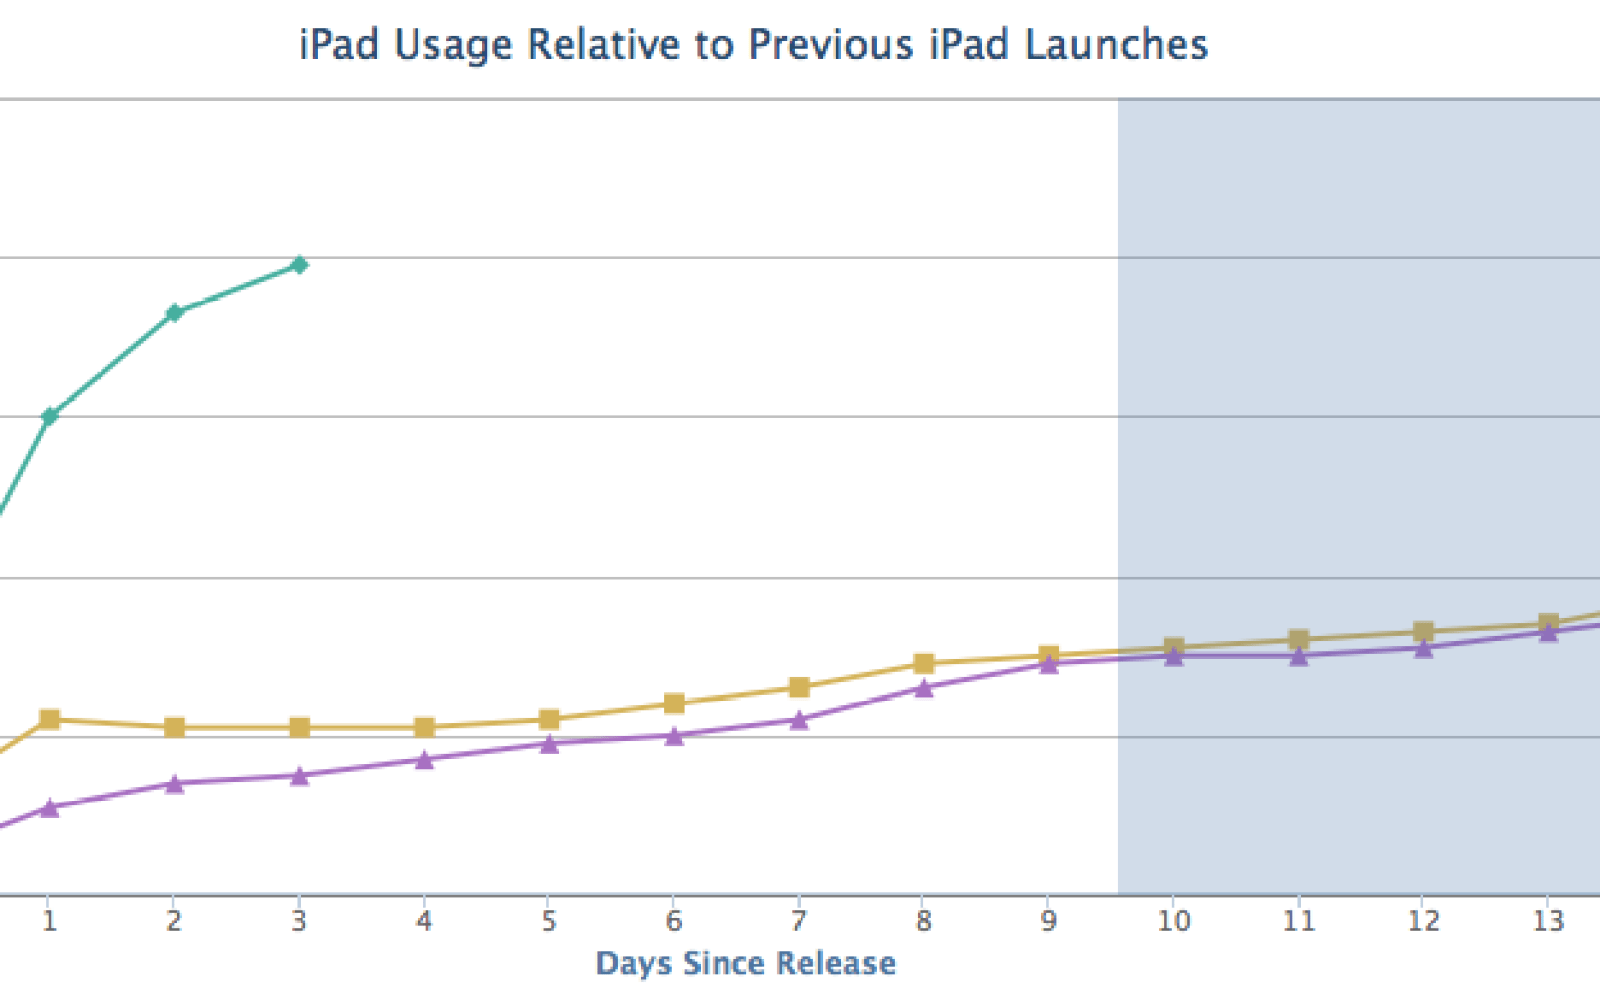 iPad Air off to a good start as early usage outpaces previous models 4-to-1